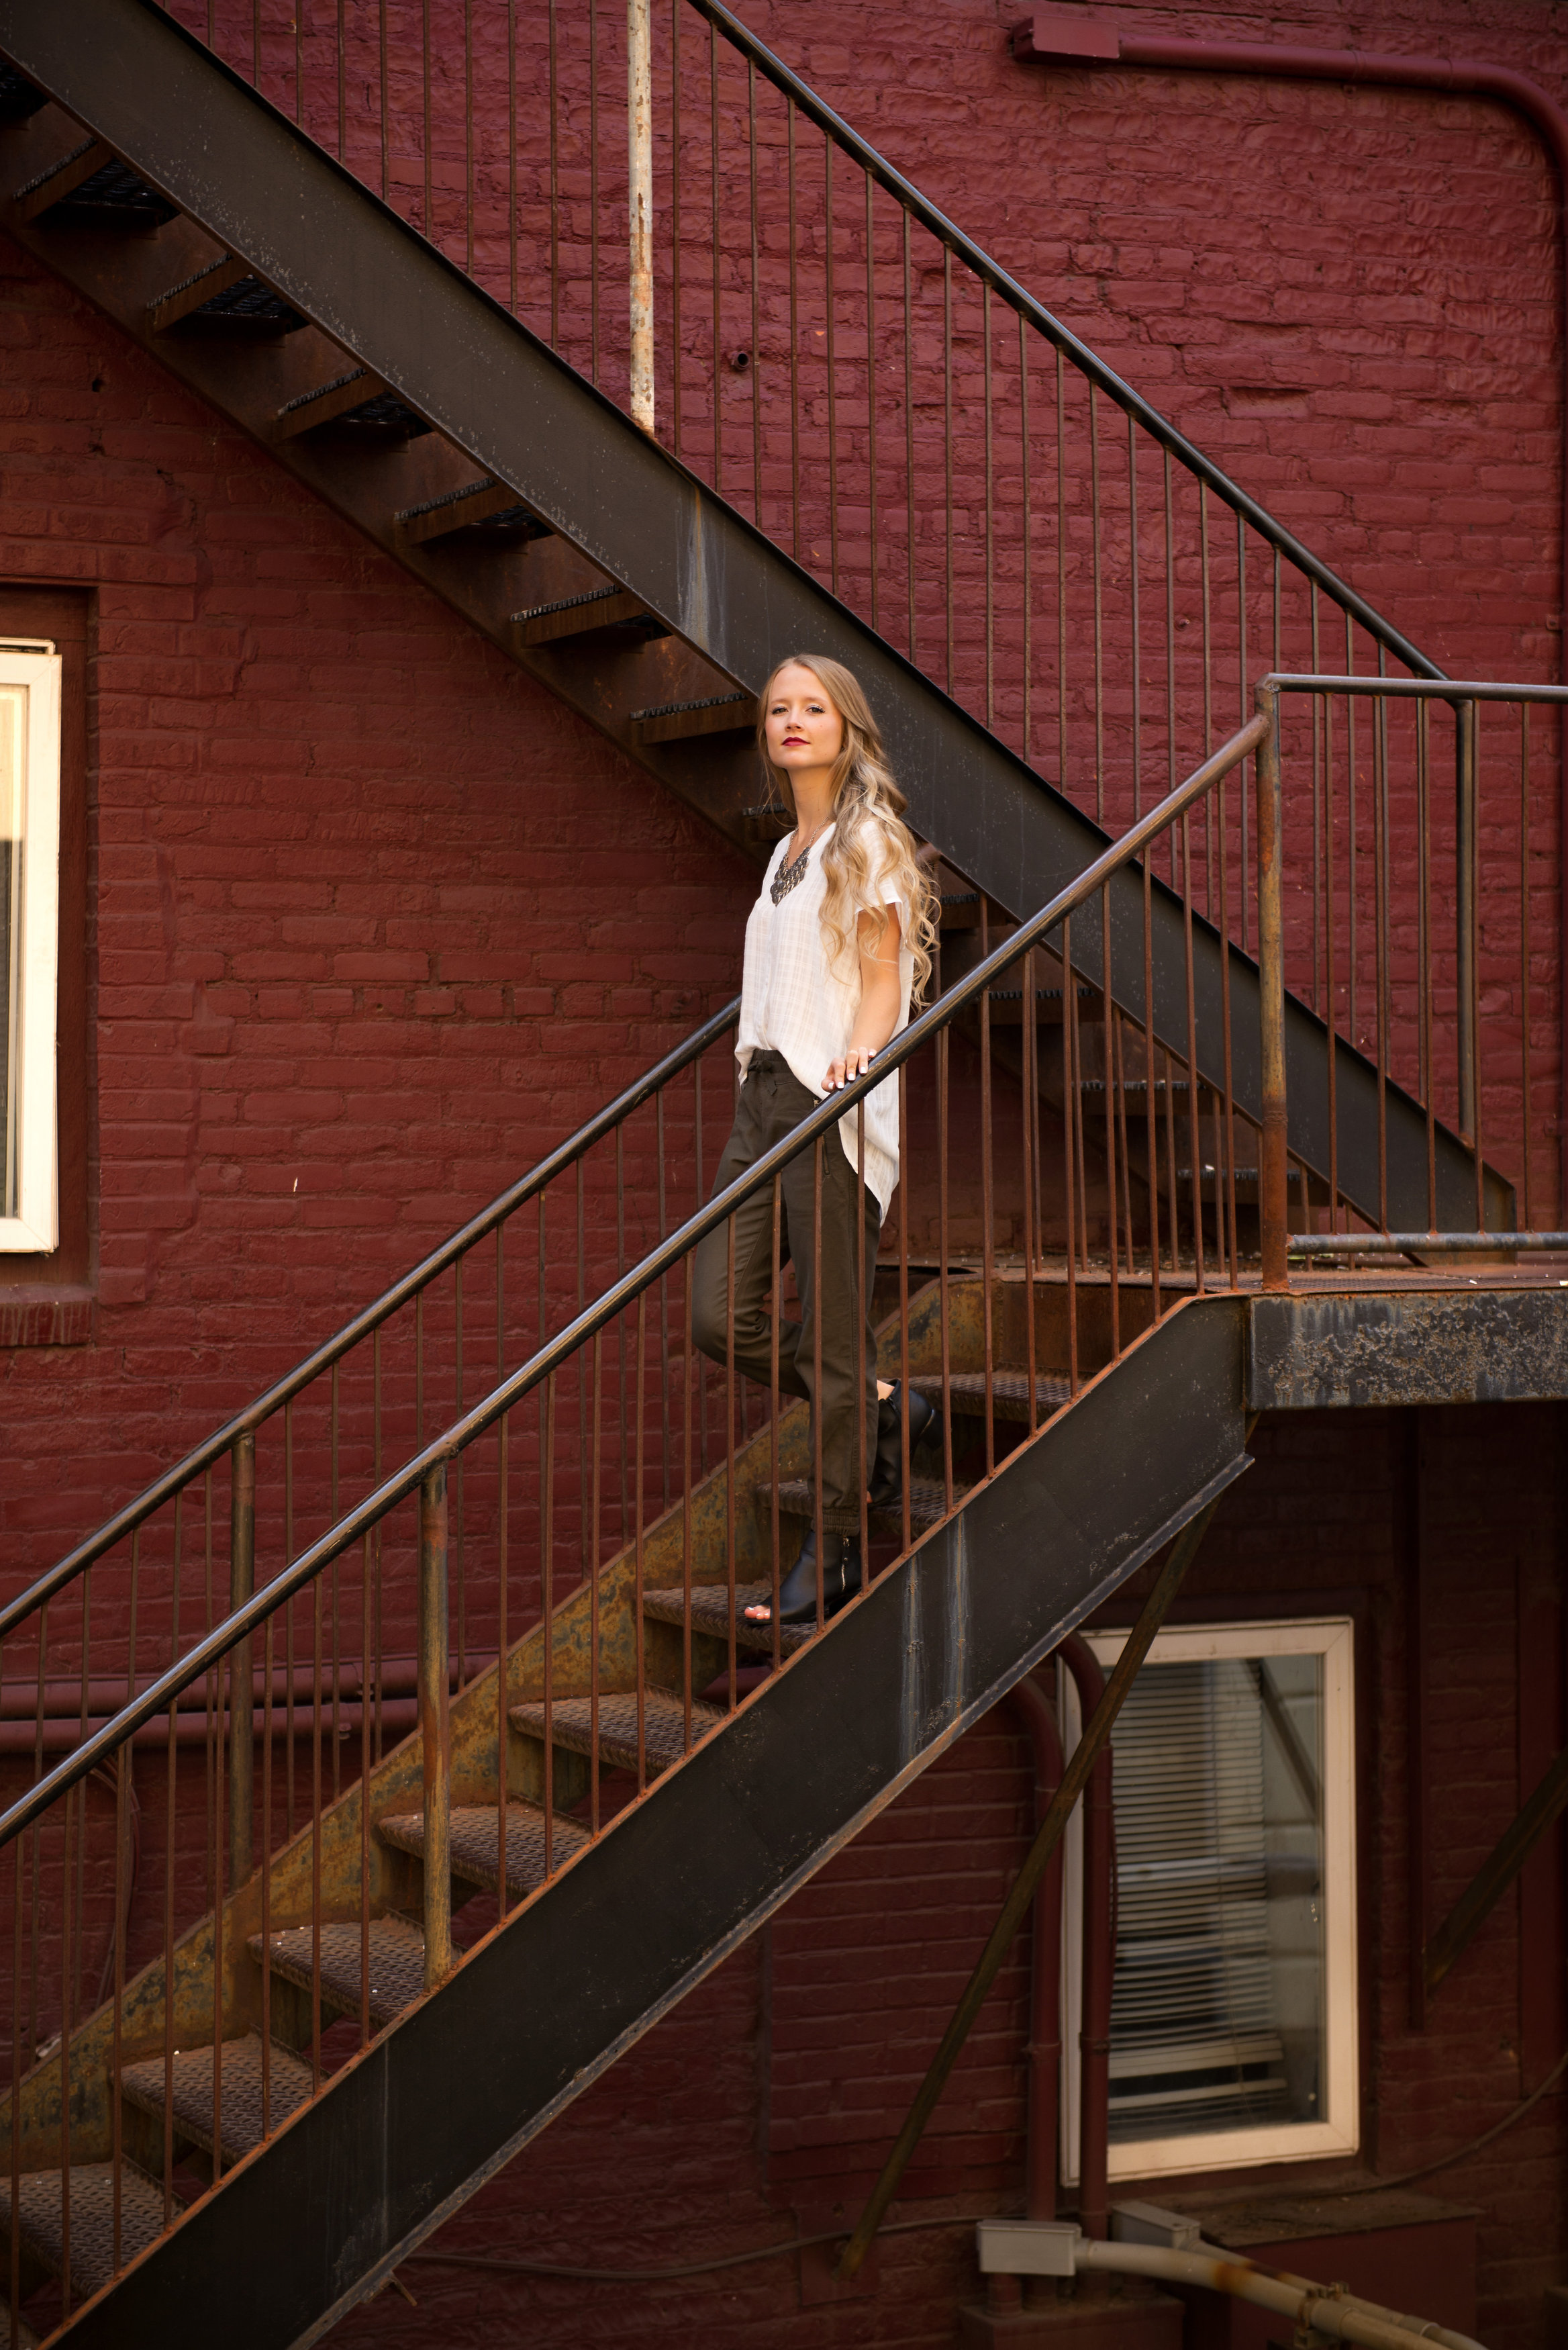 orlando-senior-girls-alley-stairs.jpg